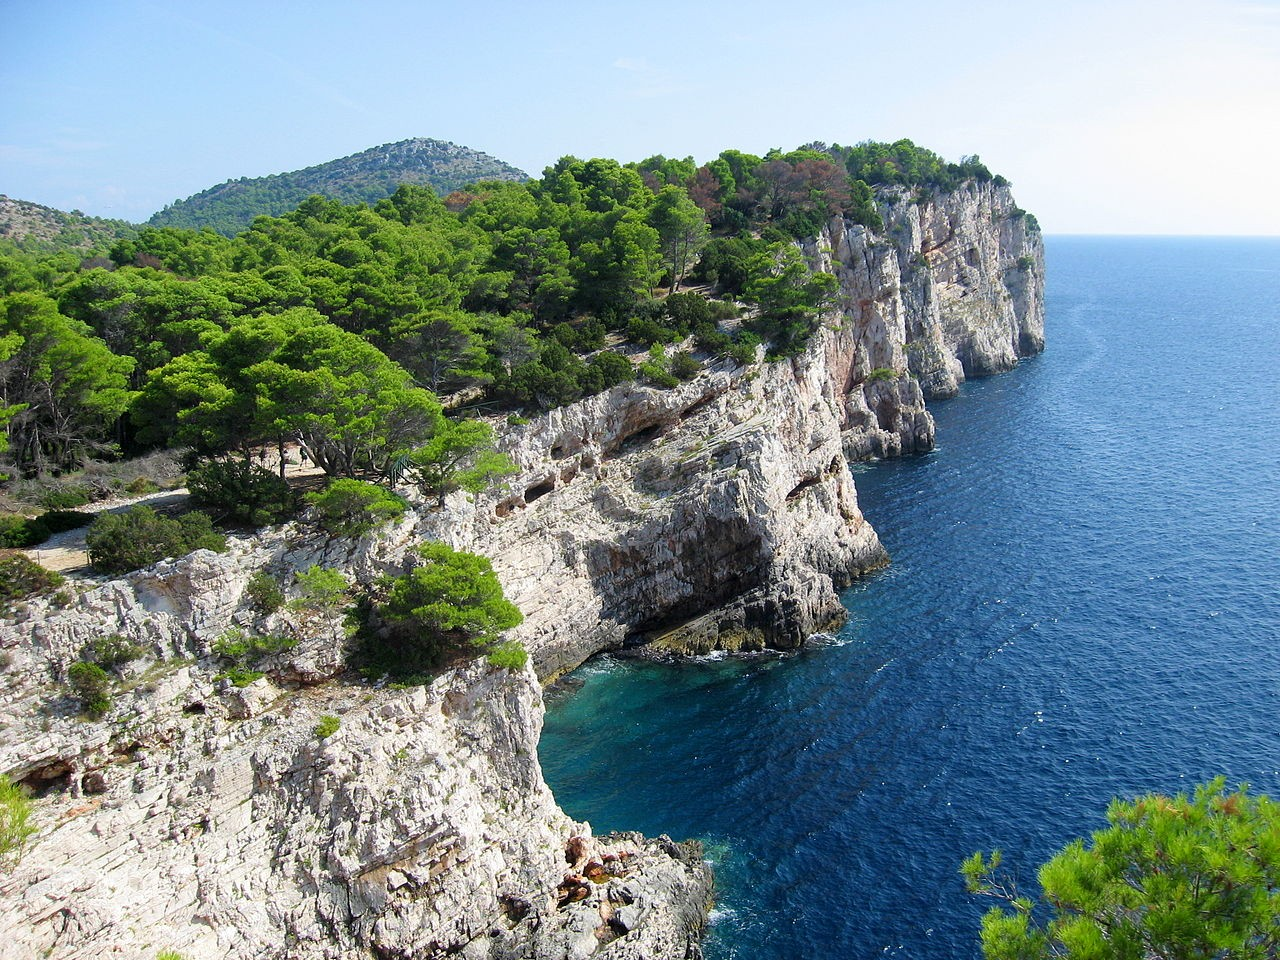 Rocks and green trees in Telascica bay